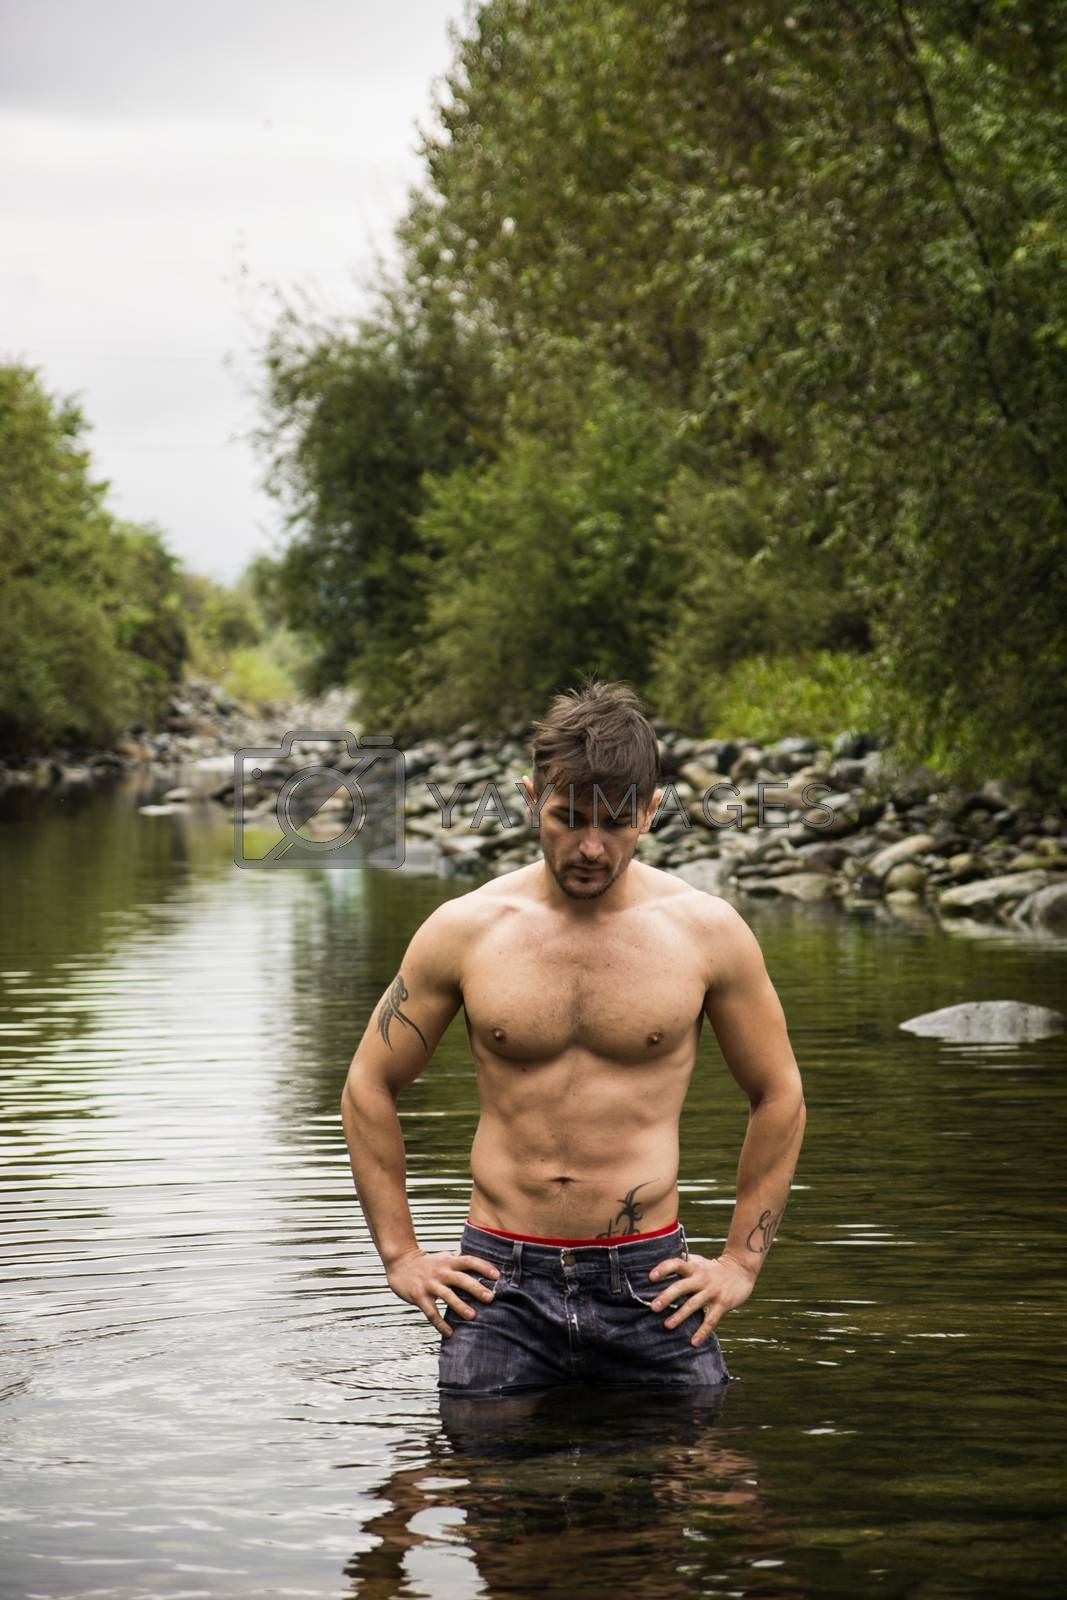 Handsome young muscle man standing in water pond, naked by artofphoto